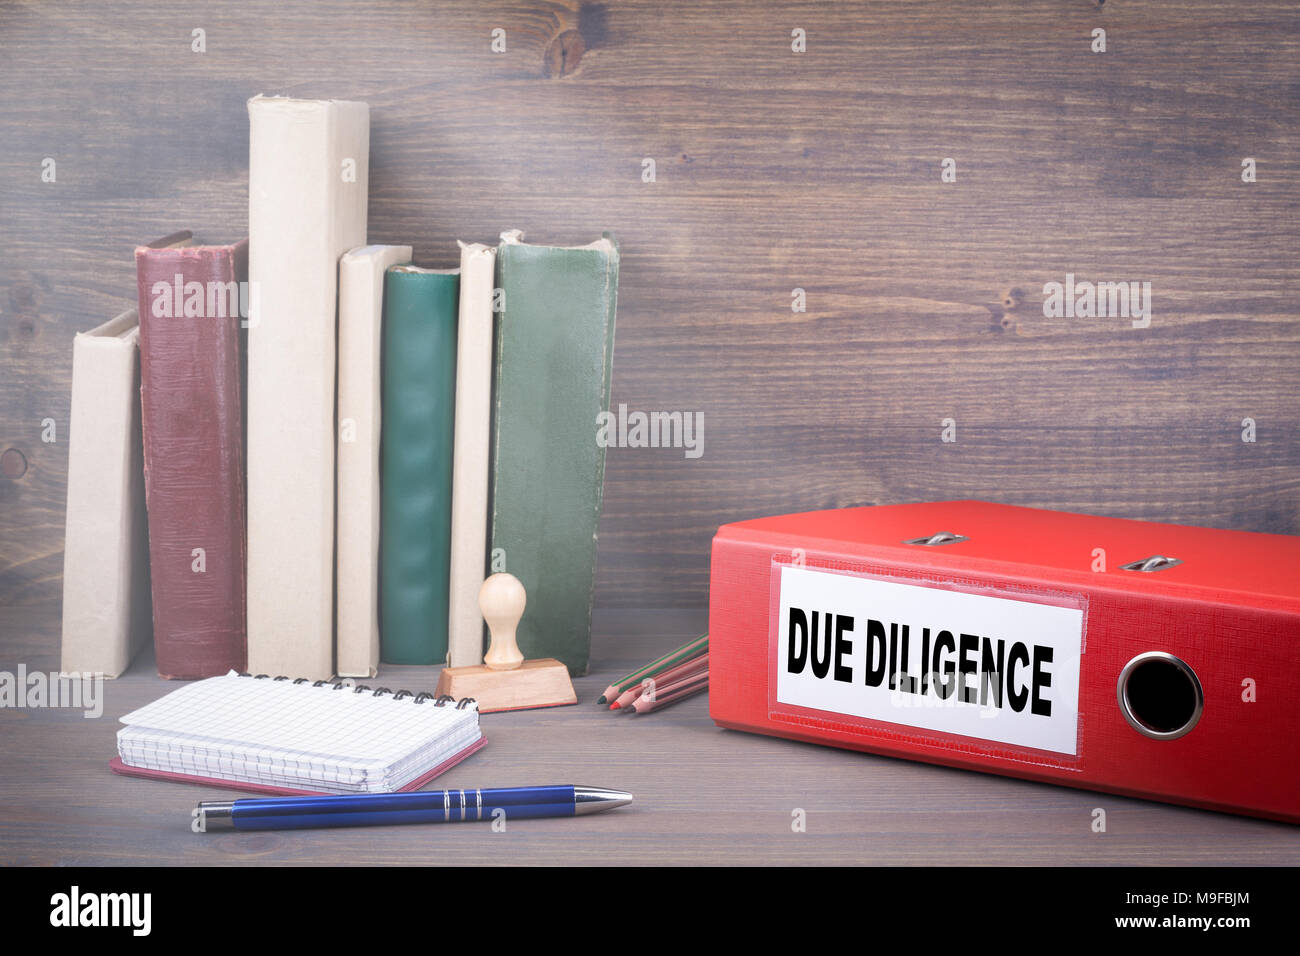 Due Diligence, Business Concept - Stock Image